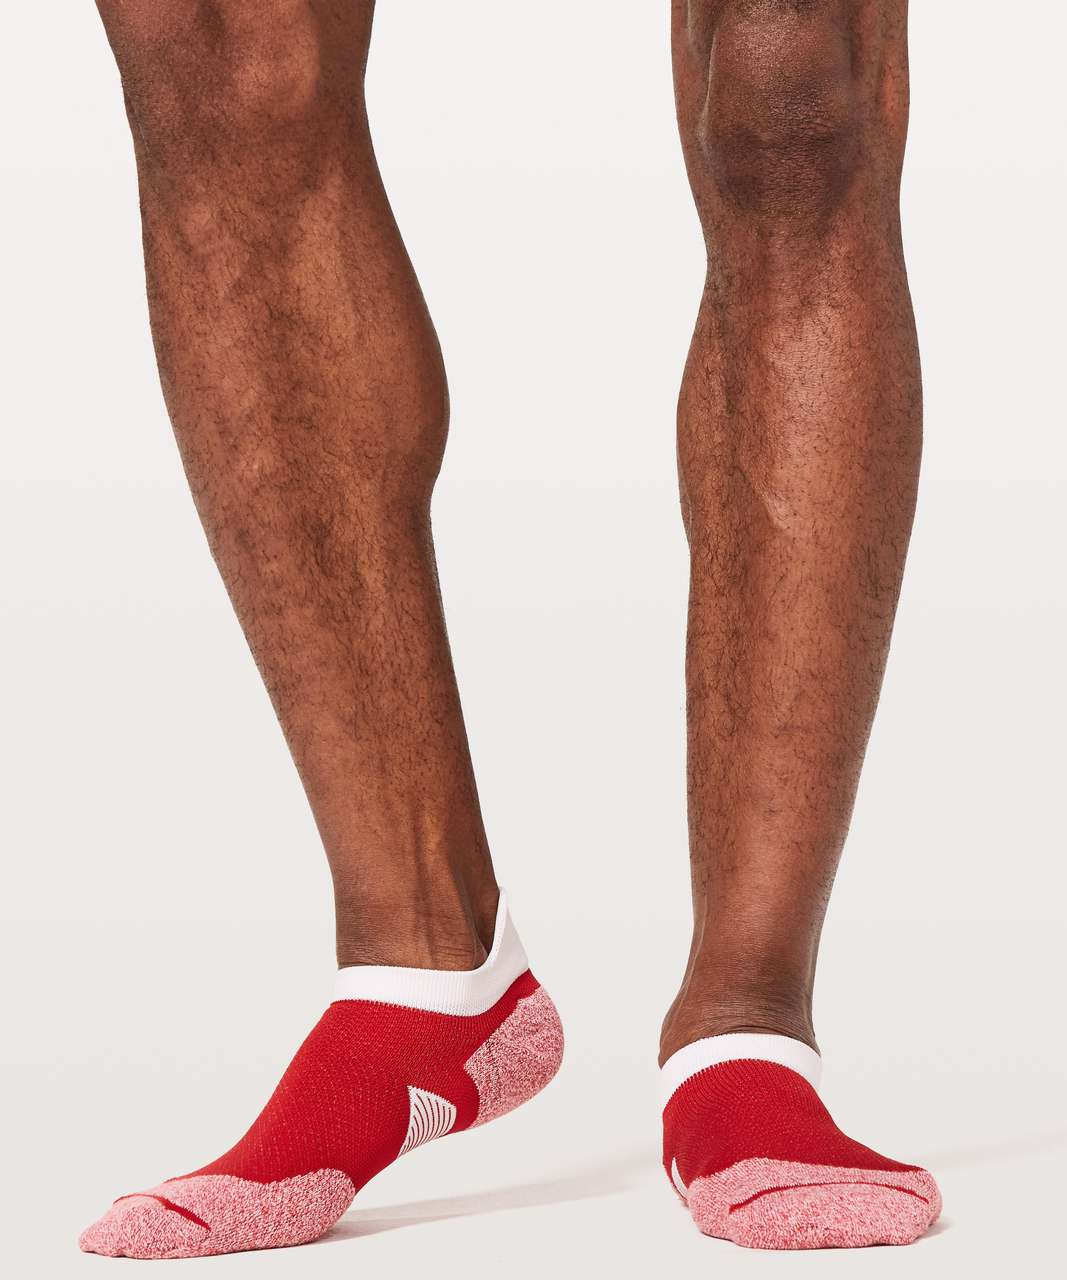 Lululemon T.H.E. Sock *Silver - Bold Red / White